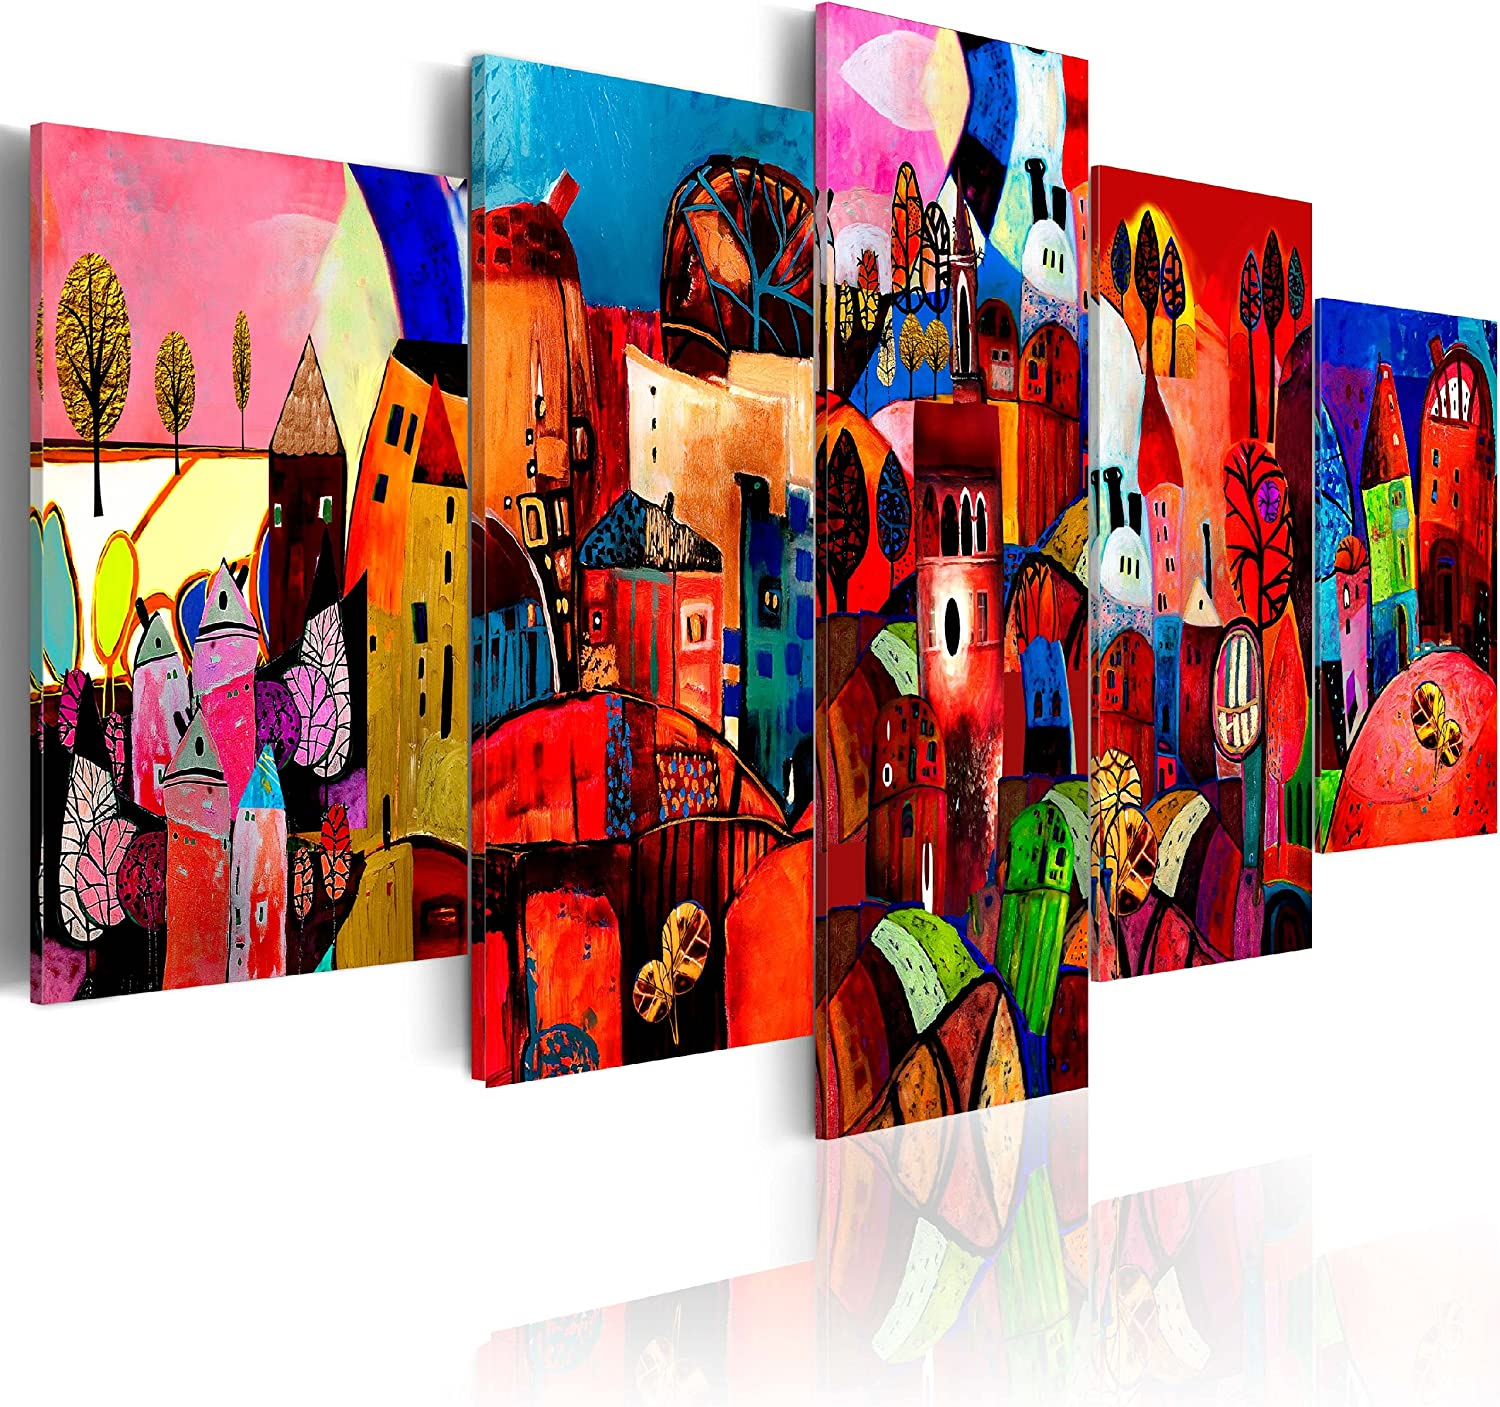 murando - Cuadro en Lienzo Colorido 200x100 - Impresión de 5 Piezas Material Tejido no Tejido Impresión Artística Imagen Gráfica Decoracion de Pared 051447